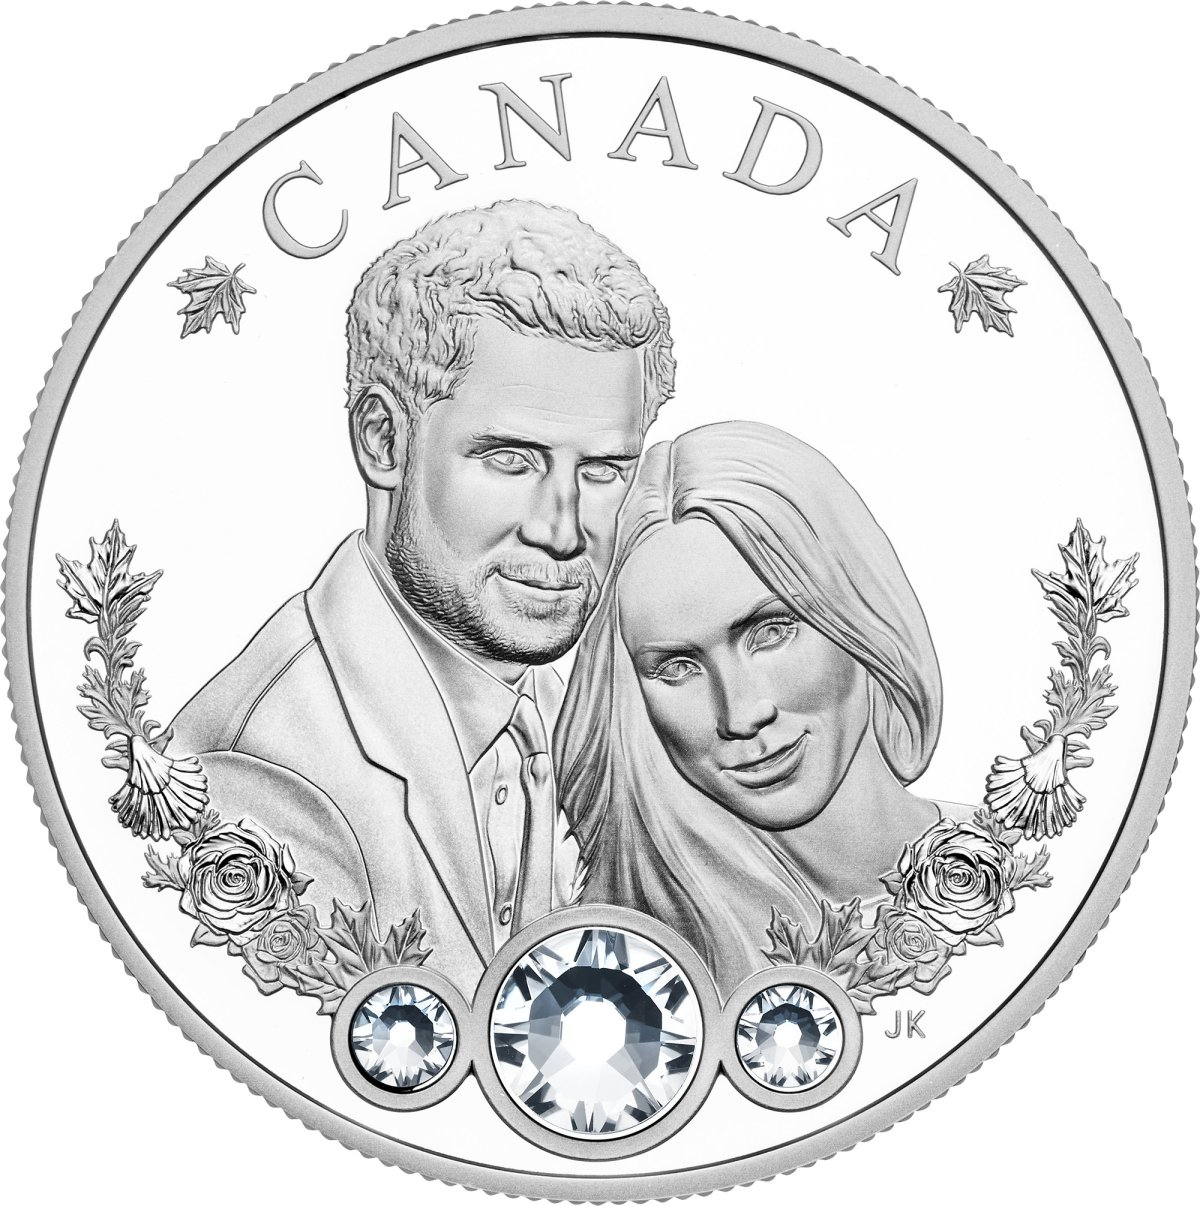 Prince Harry and Meghan Markle are immortalized on the Royal Canadian Mint coin.